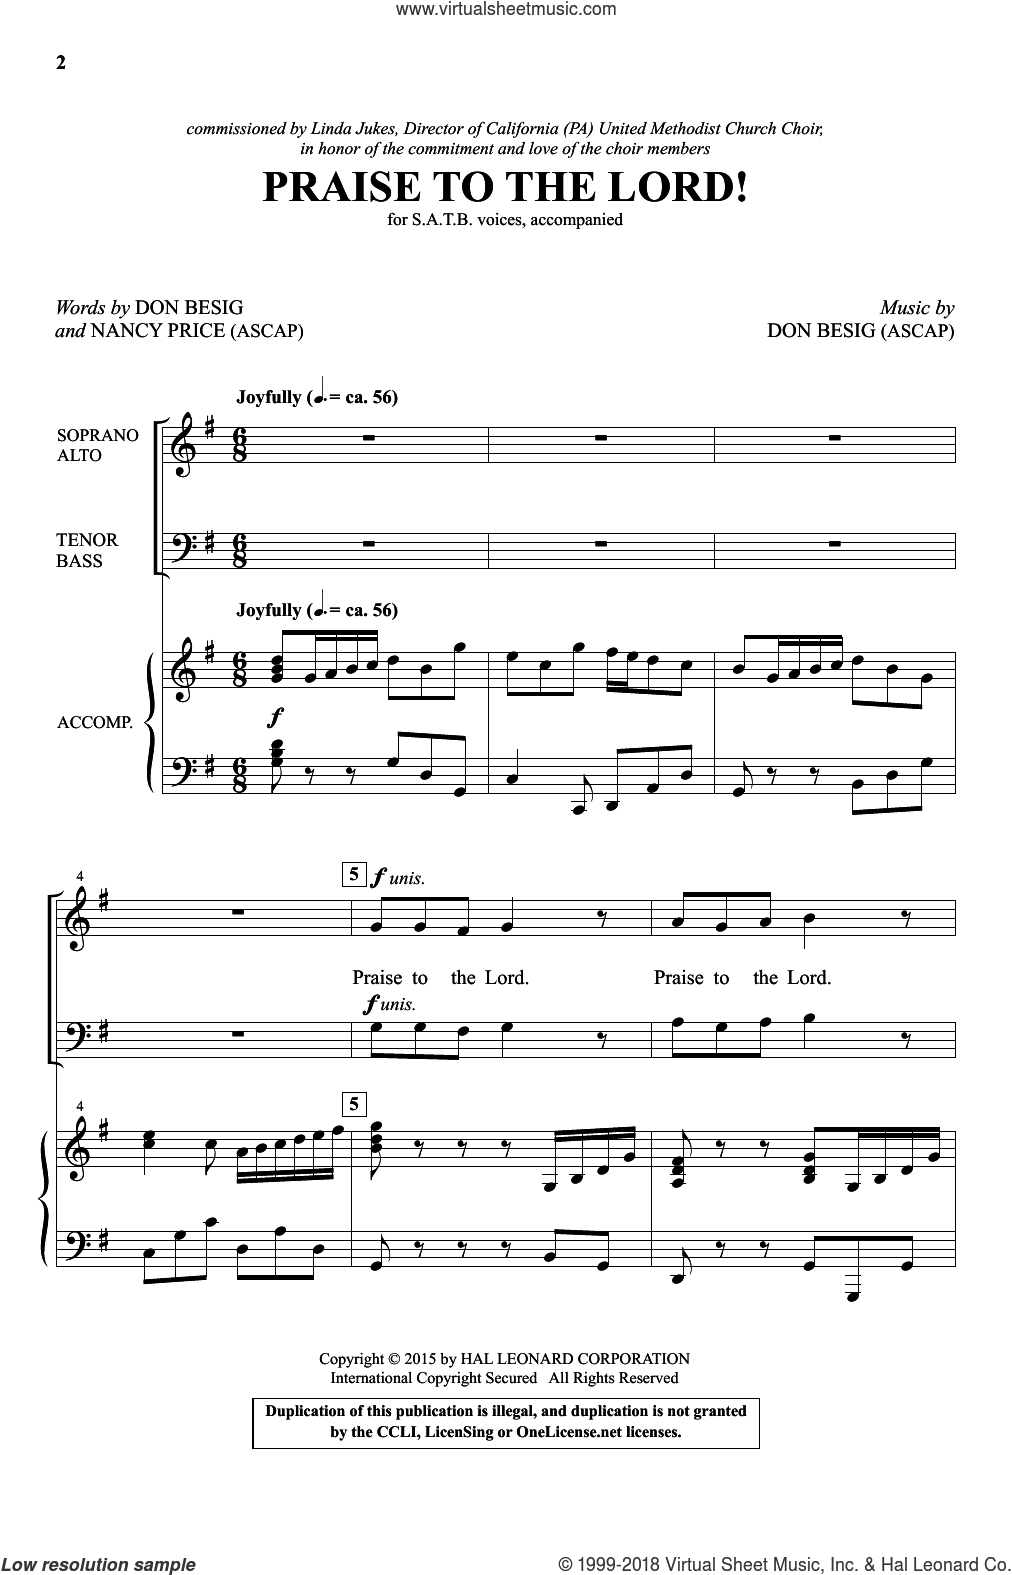 Praise To The Lord! sheet music for choir (SATB) by Ludwig van Beethoven, Don Besig and Nancy Price, intermediate choir (SATB). Score Image Preview.